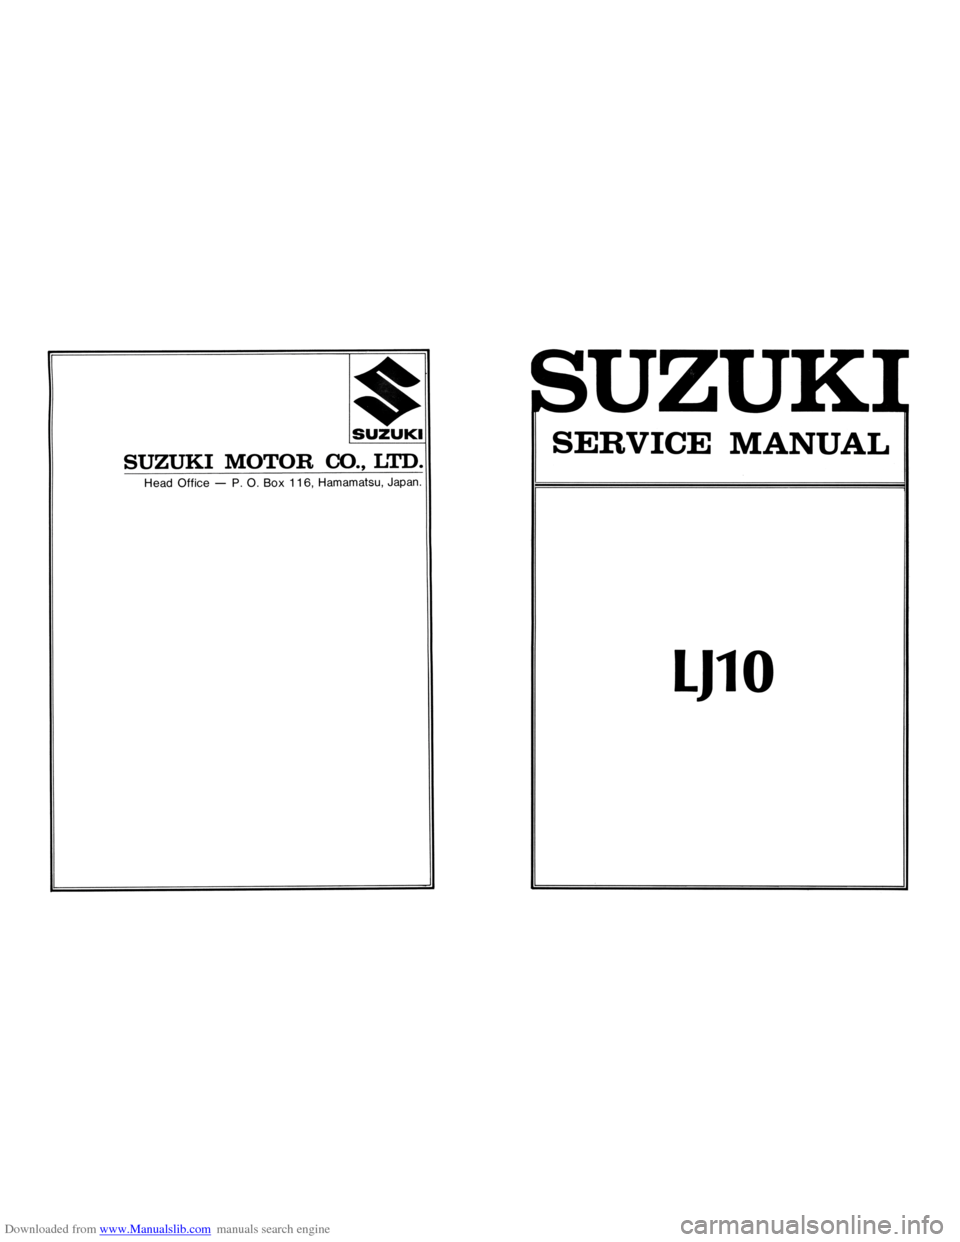 SUZUKI LJ10 1973 1.G Service Workshop Manual